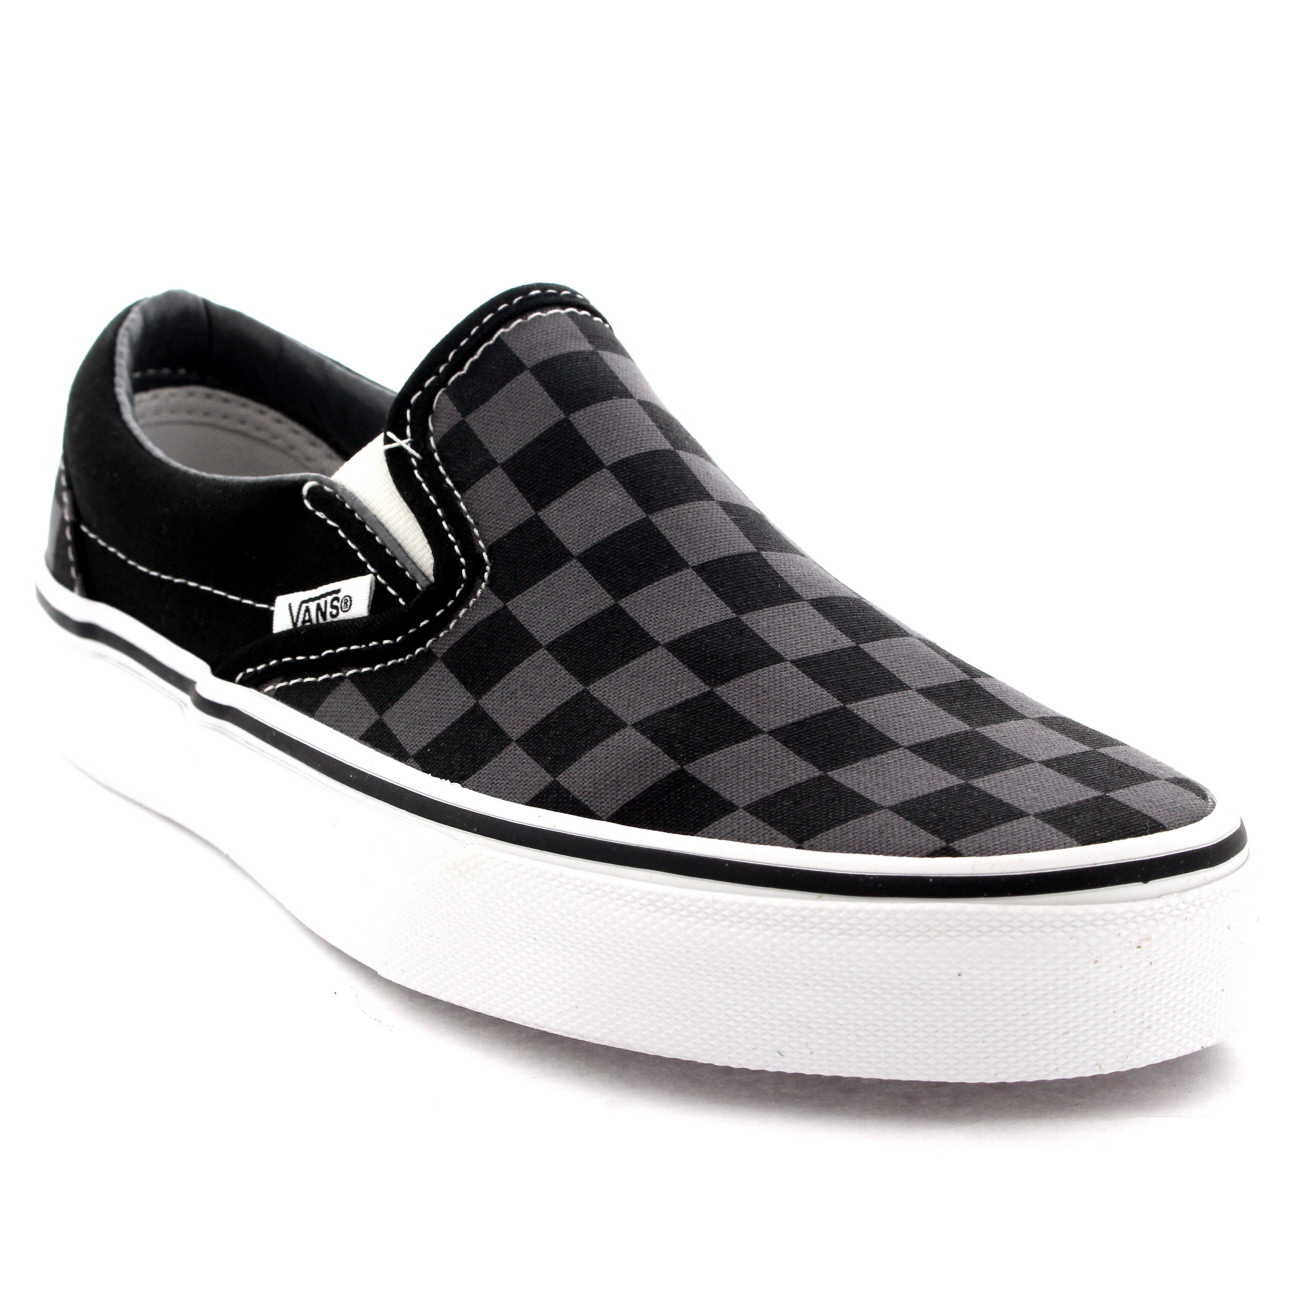 unisex adults vans classic slip on checkerboard skate. Black Bedroom Furniture Sets. Home Design Ideas